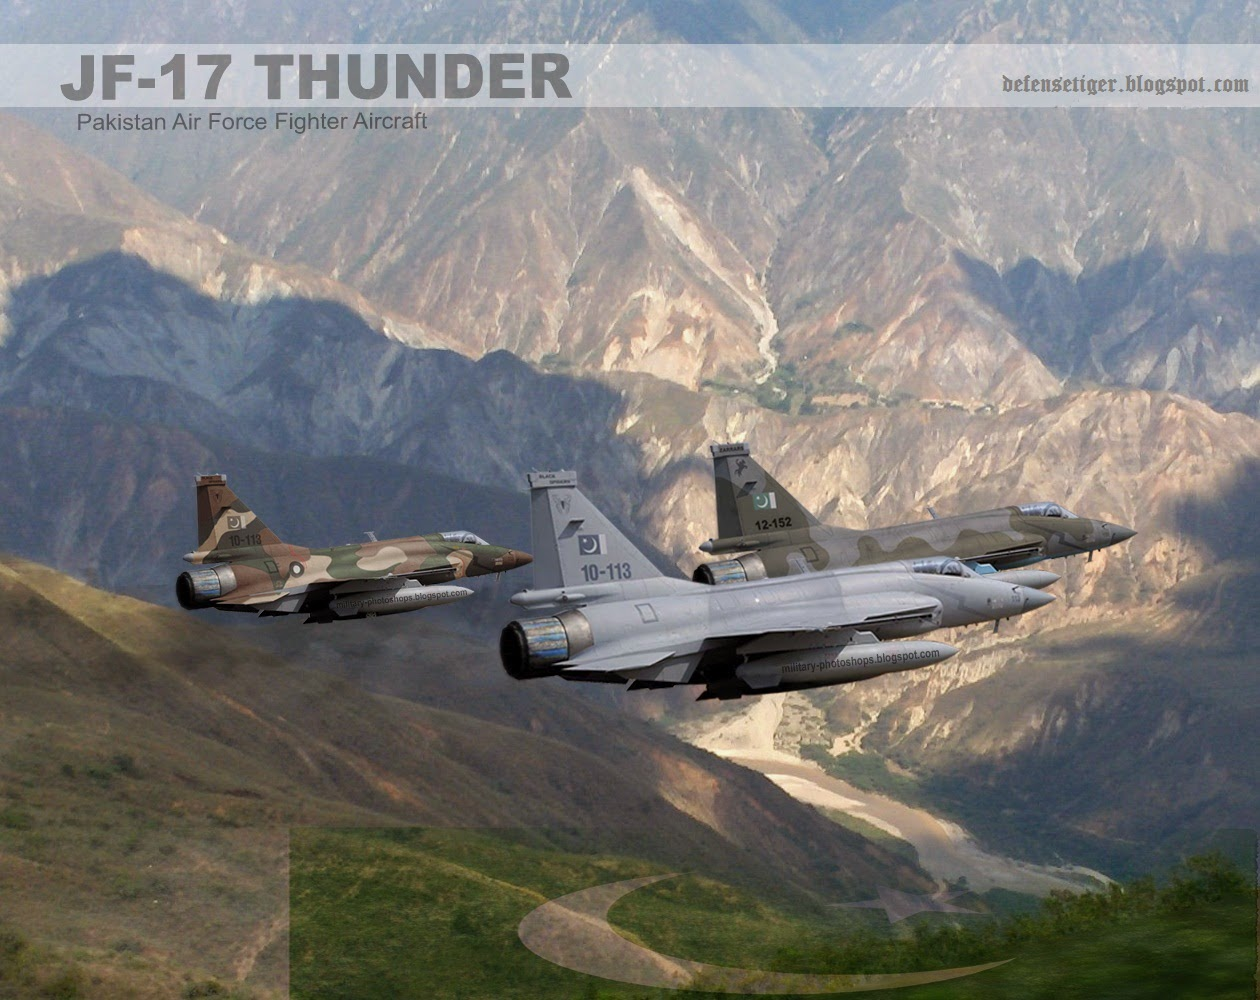 Defense Strategies: China To Induct JF-17 Thunder into Its